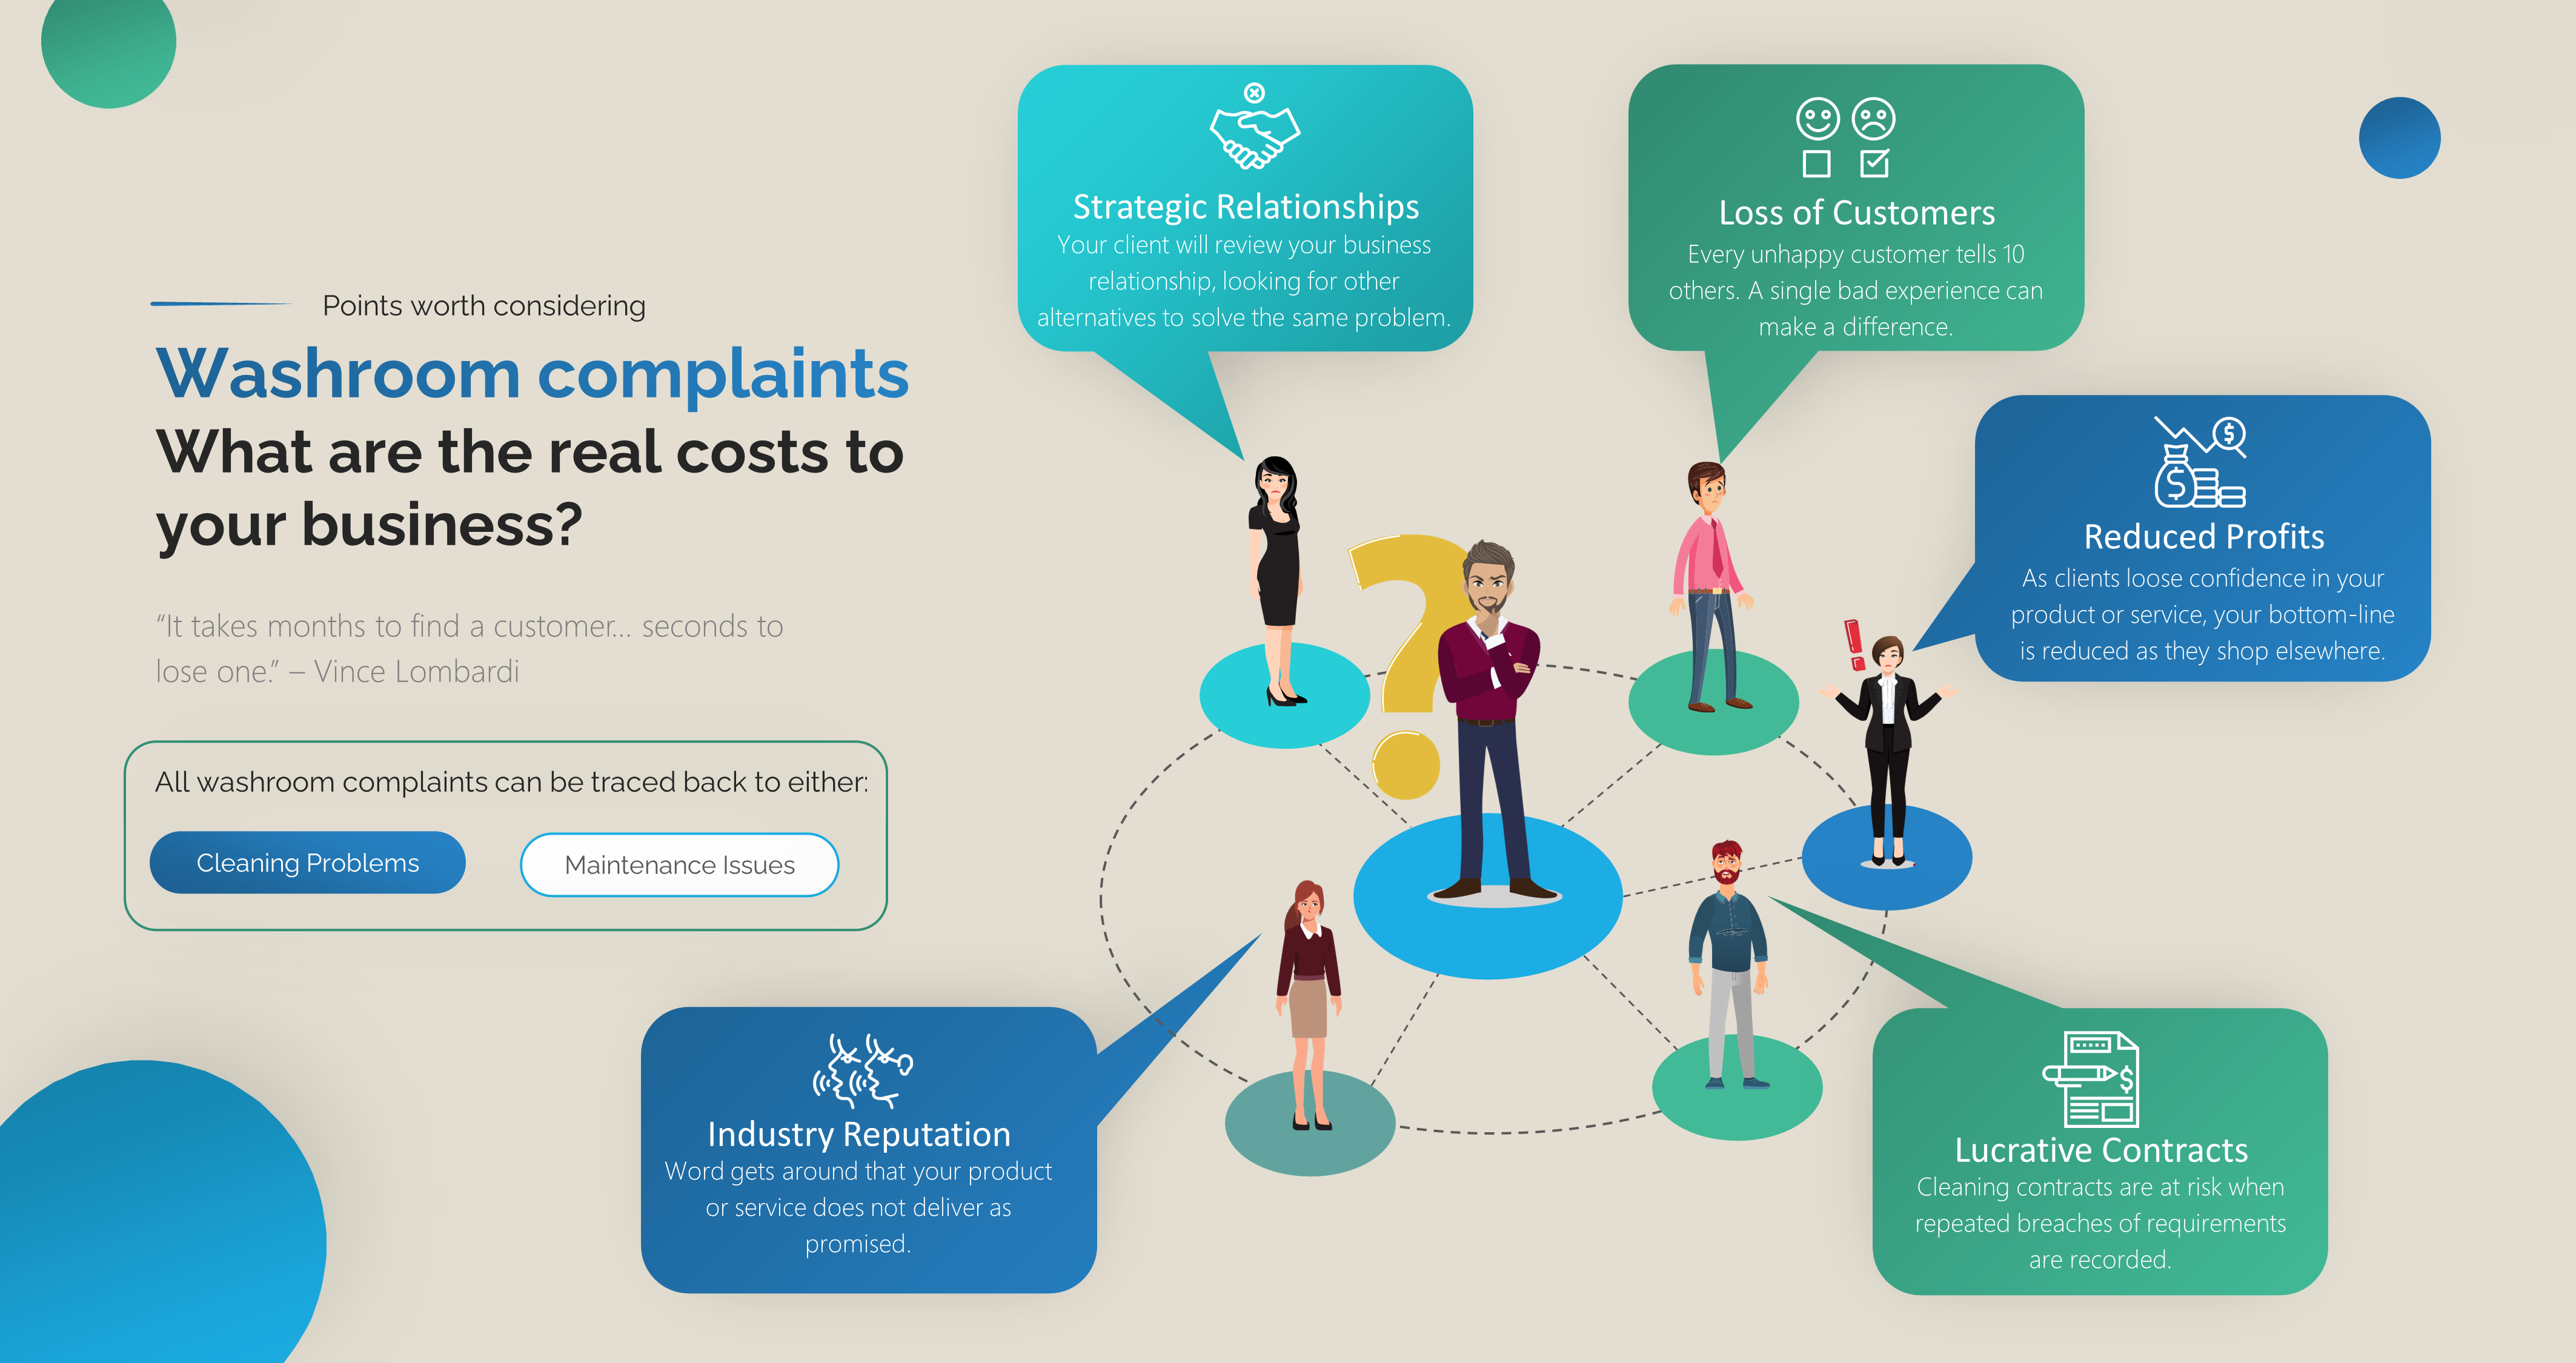 What are the real costs to your business of washroom complaints?